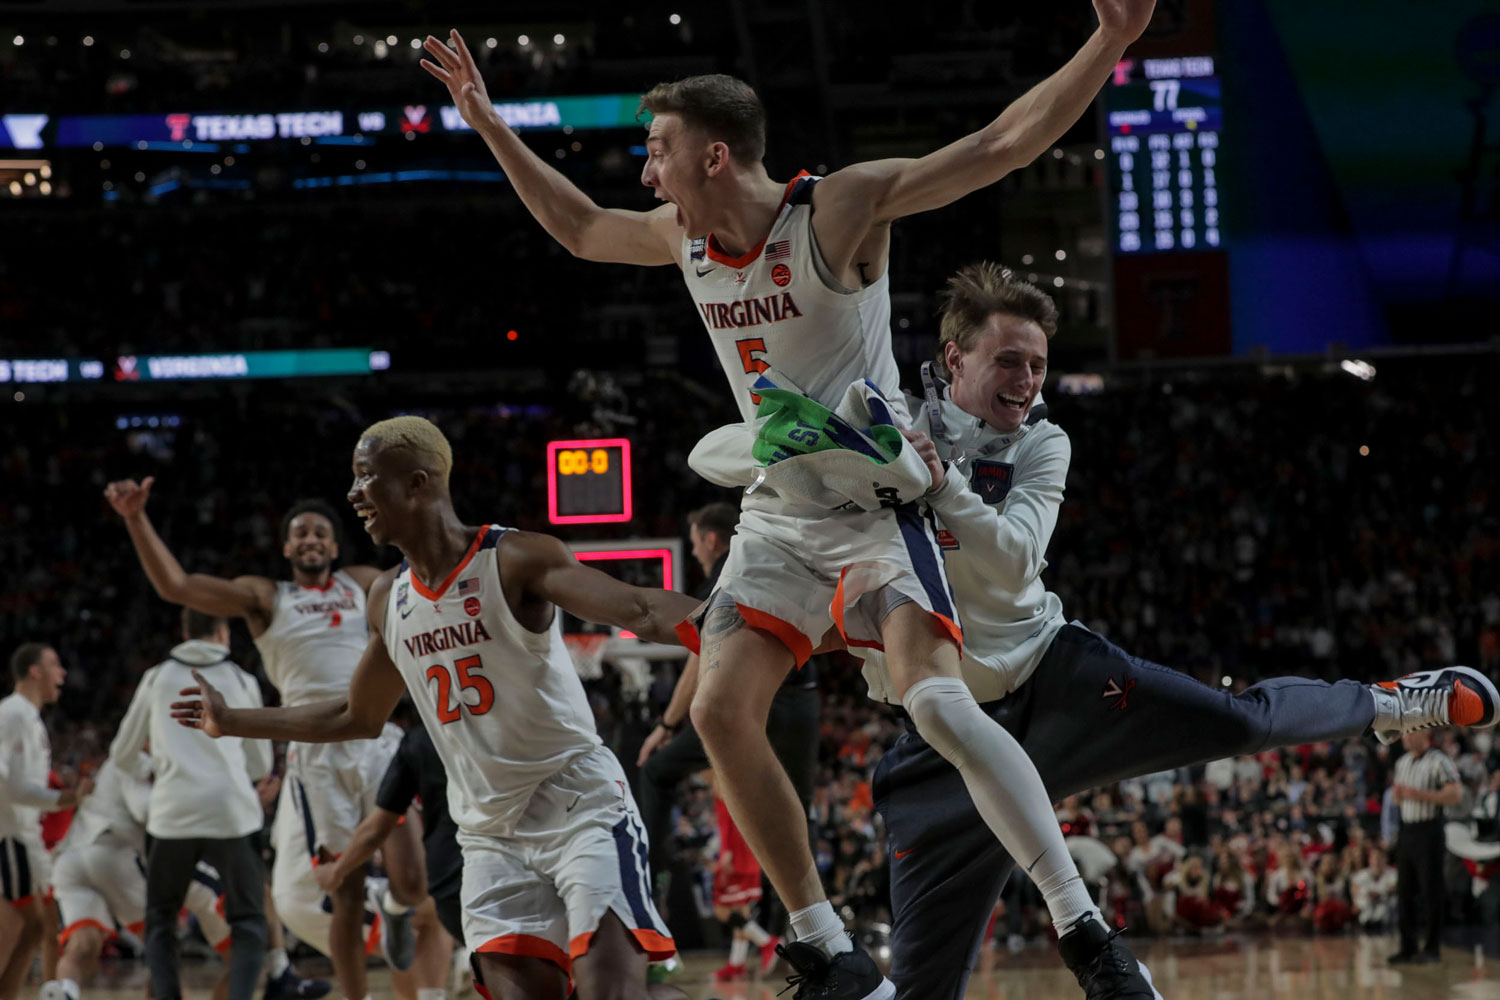 The final horn set off a massive celebration in U.S. Bank Stadium – for players, including Braxton Key, Mamadi Diakite, Kyle Guy and Grant Kersey, shown here, and for the fans who had cheered them on. (Photo by Sanjay Suchak, University Communications)